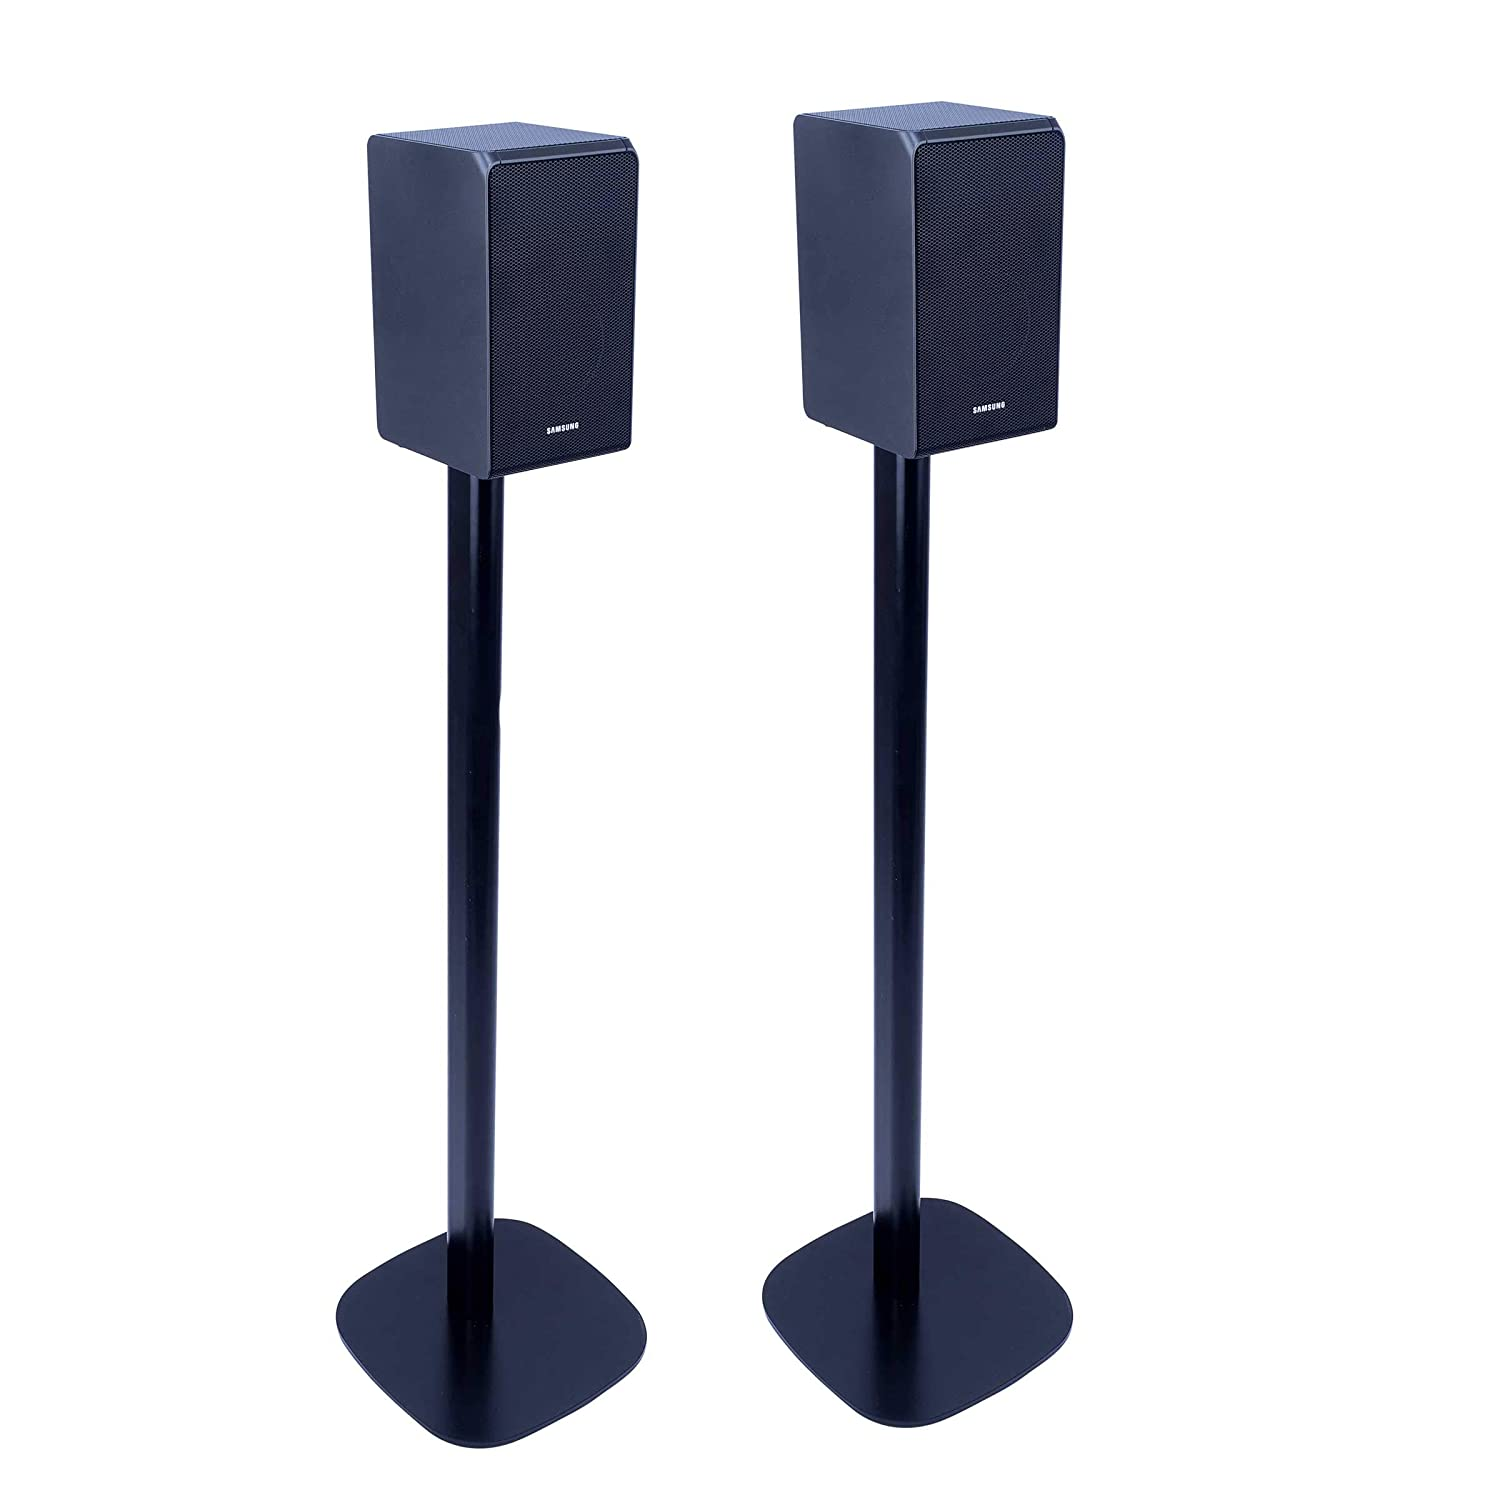 Allows You to Place Your Samsung HW-Q90R Exactly Where You Want it Vebos Floor Stand Samsung HW-Q90R Black Set en Optimal Experience in Every Room Compatible with Samsung HW-Q90R